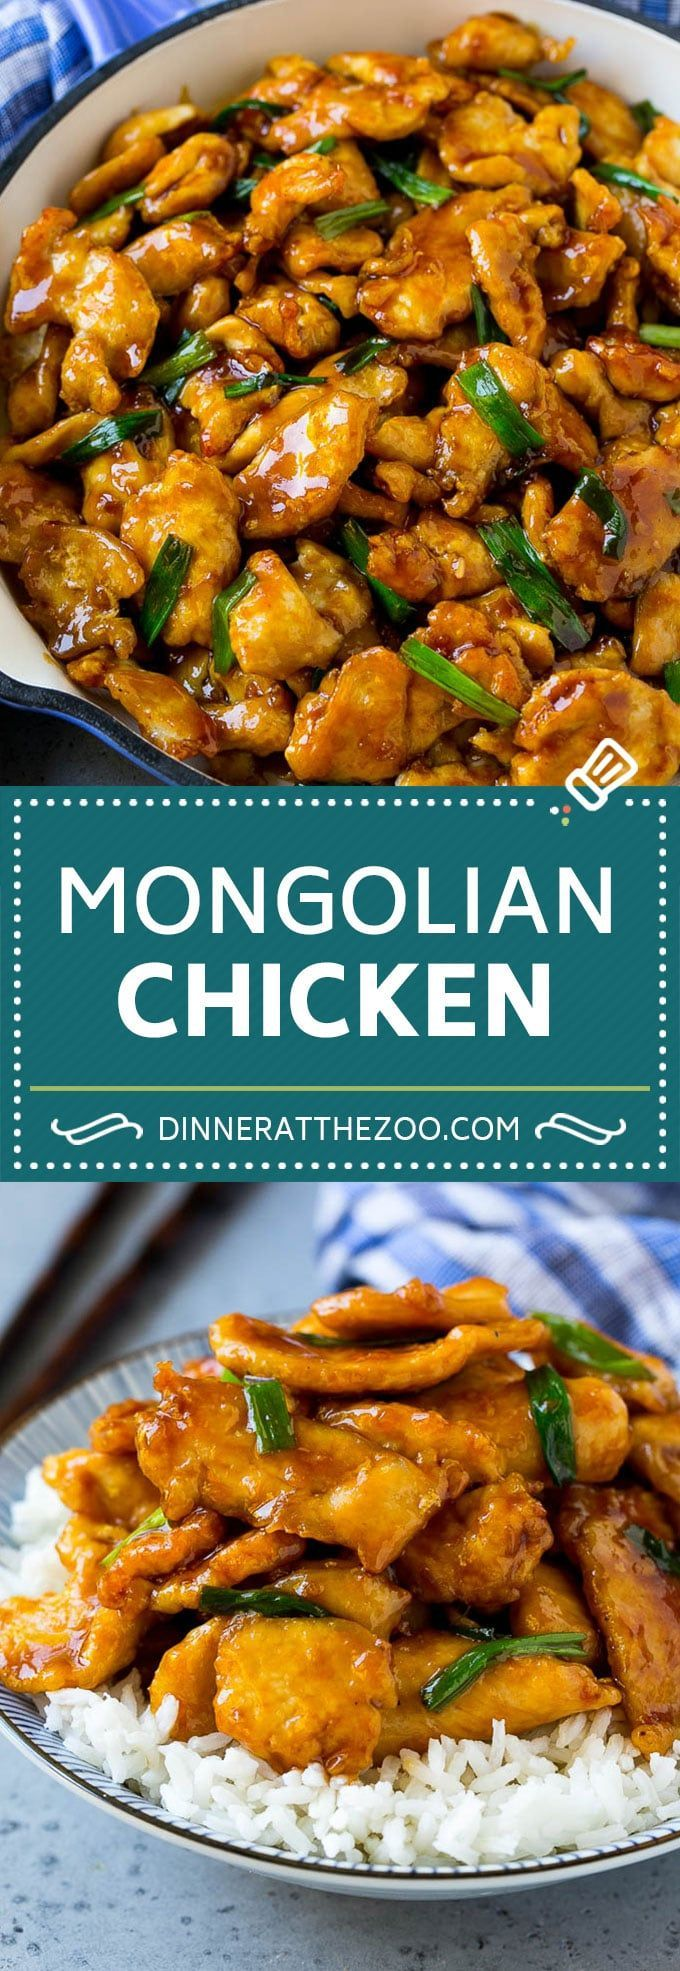 Mongolian Chicken - Dinner at the Zoo